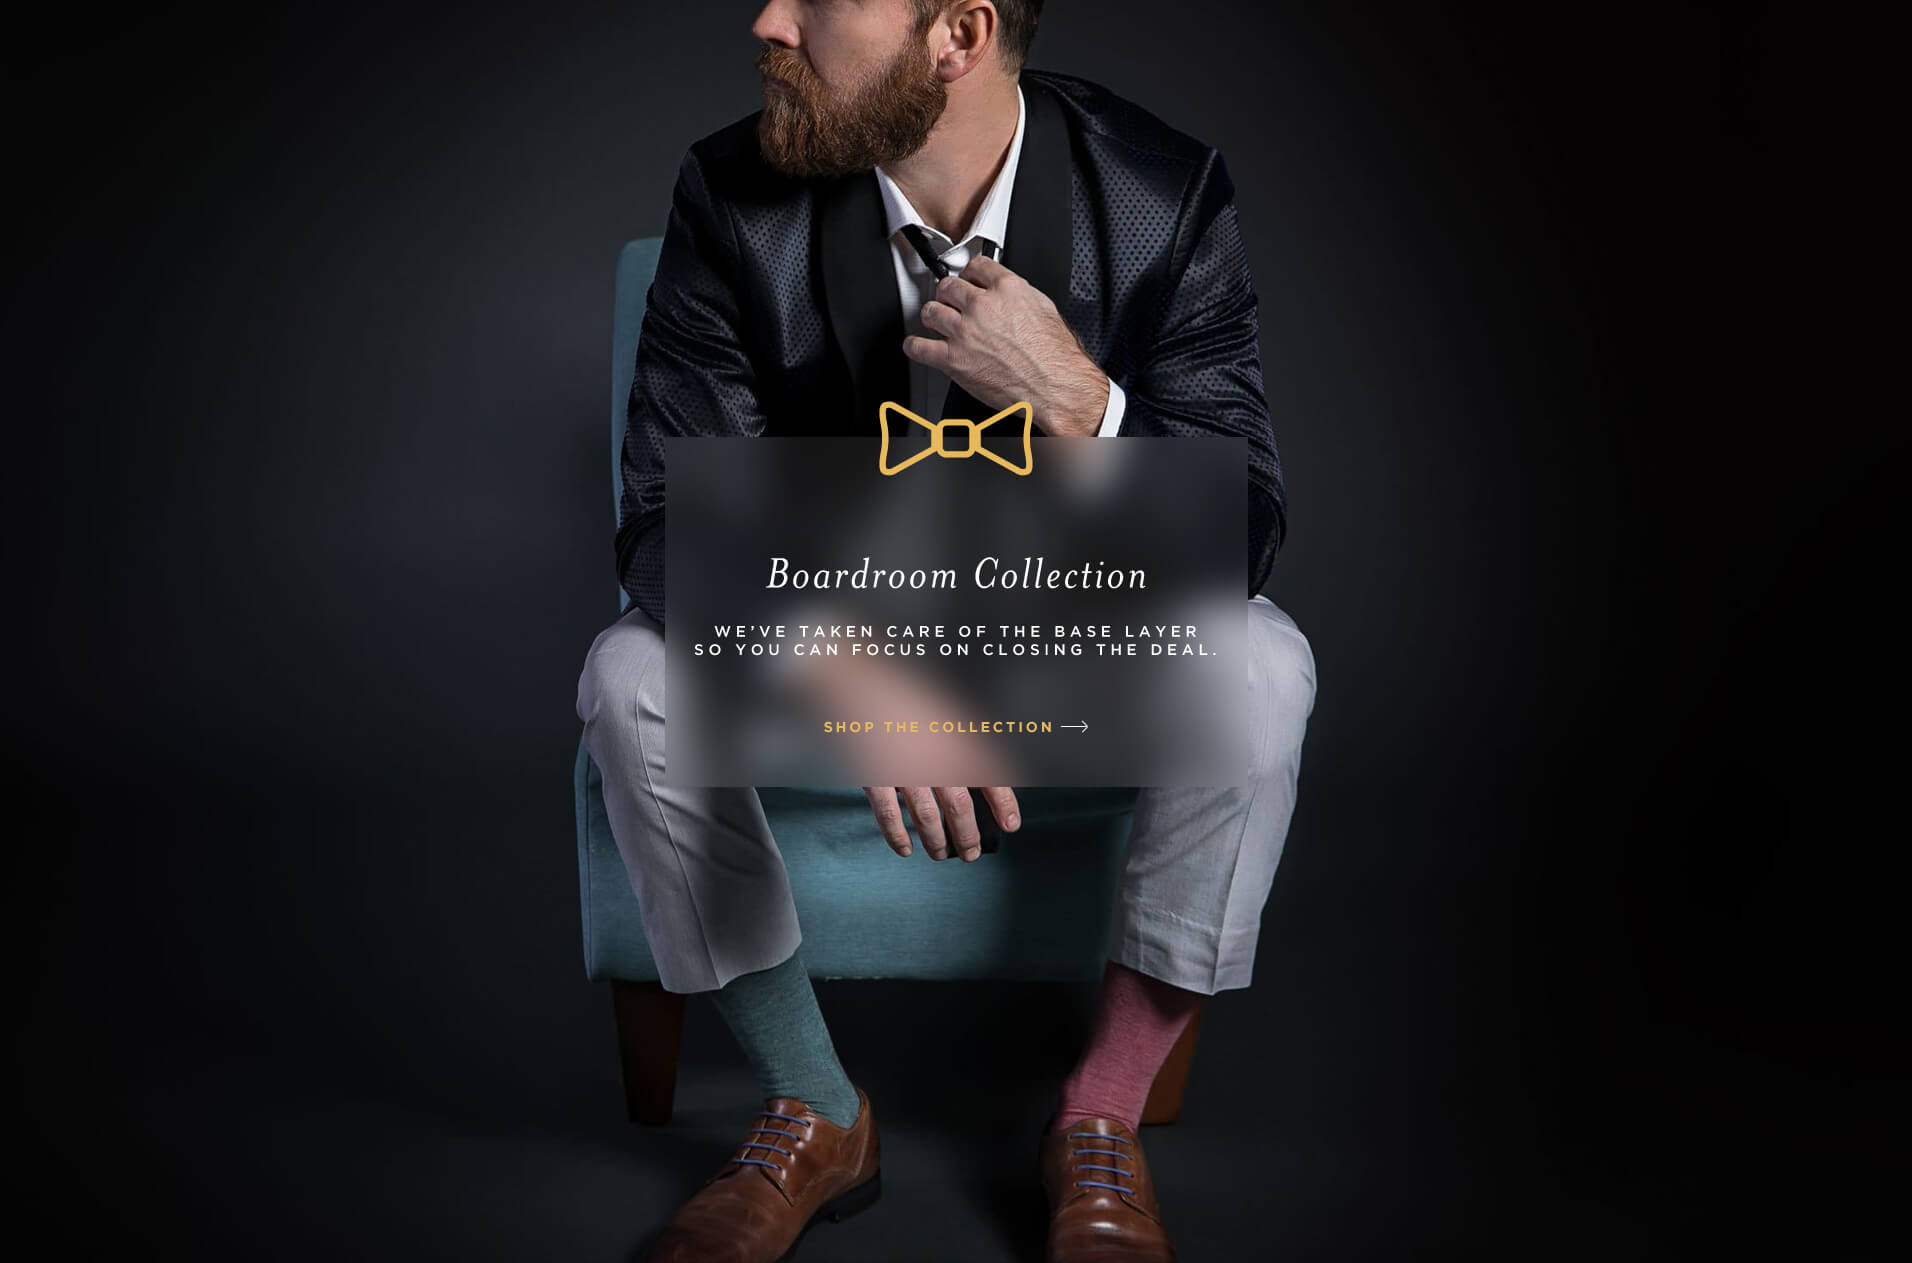 DeadSoxy Cool Men's Dress Socks. The Boardroom Collection is a premium dress sock for men.